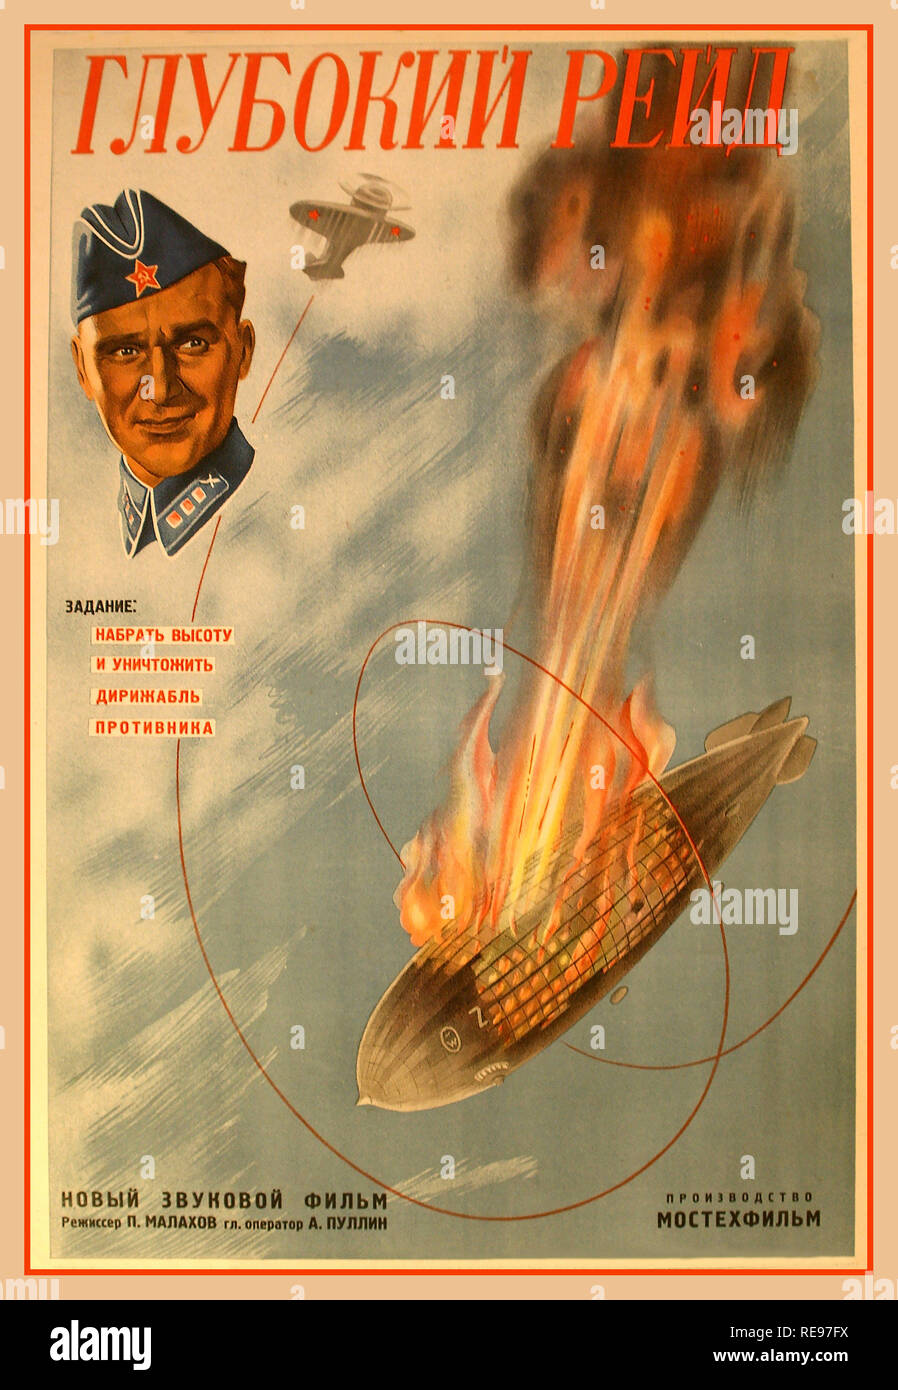 "1930's Vintage Soviet Russian Film Poster Original vintage propaganda movie poster for a film, ""Deep Raid""  The caption on the poster reads ""Brief: gain altitude and destroy the zeppelin of the enemy.""  The airship pictured is most likely an LZ 130 Graf Zeppelin II that was built after the Hindenburg disaster. It was used by the Luftwaffe, Nazi Air Force, to conduct air reconnaissance over Poland and Great Britain. Given that in 1939 USSR signed non-aggression pact with Germany, most of the copies were destroyed Stock Photo"